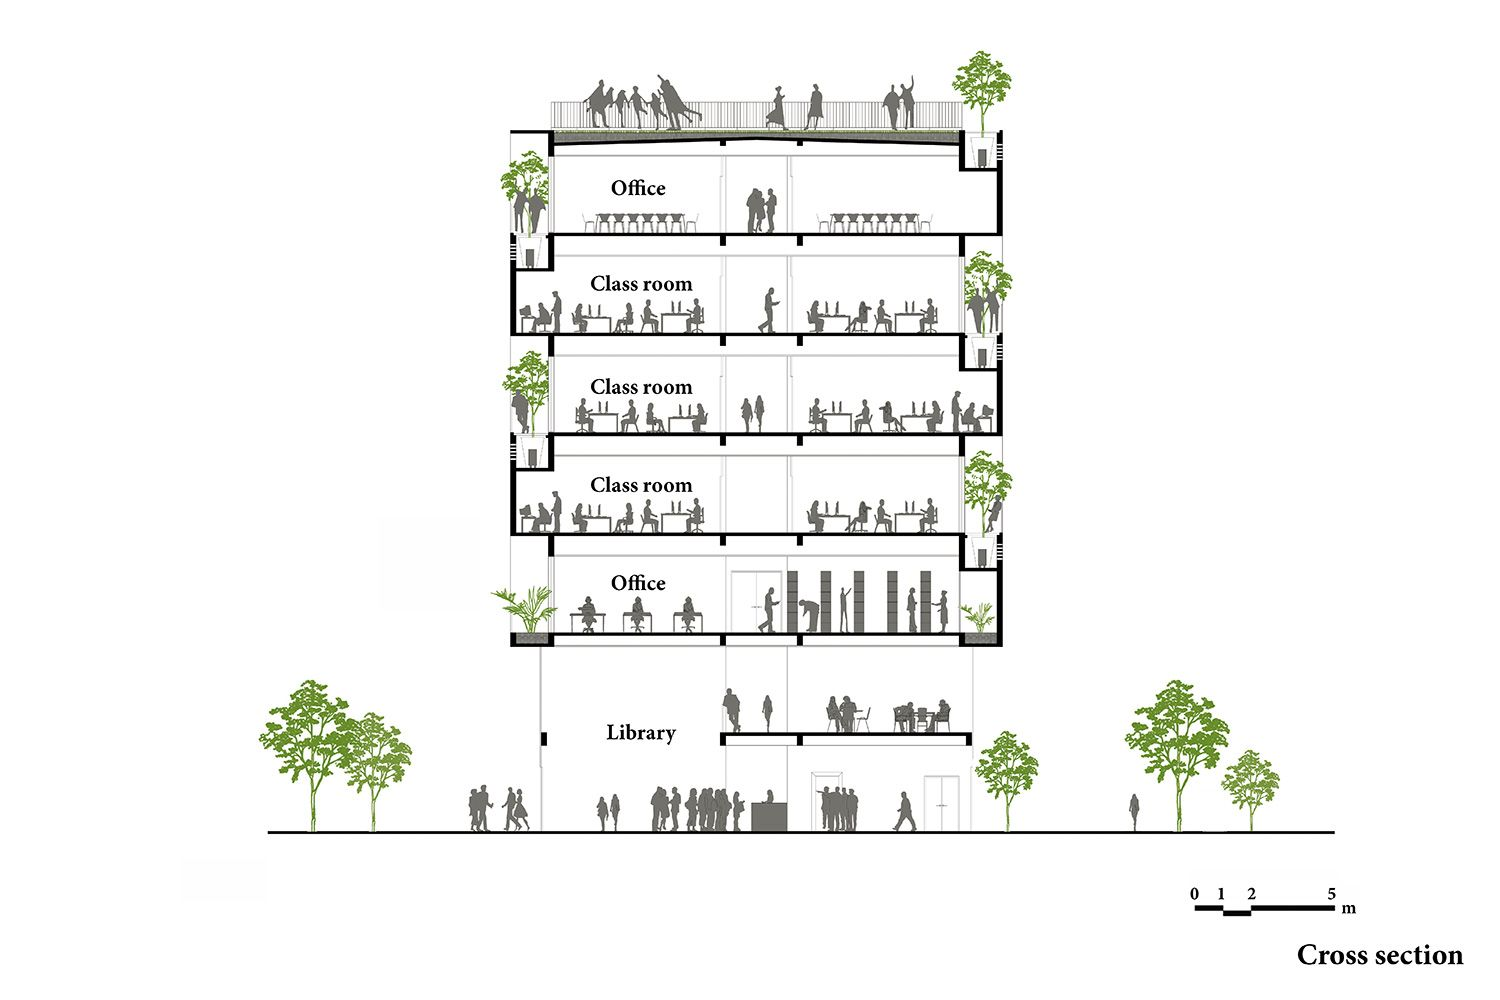 plantation+is+used+as+a+green+skin+to+reduce+direct+heat+transfer+through+the+building%27s+windows.